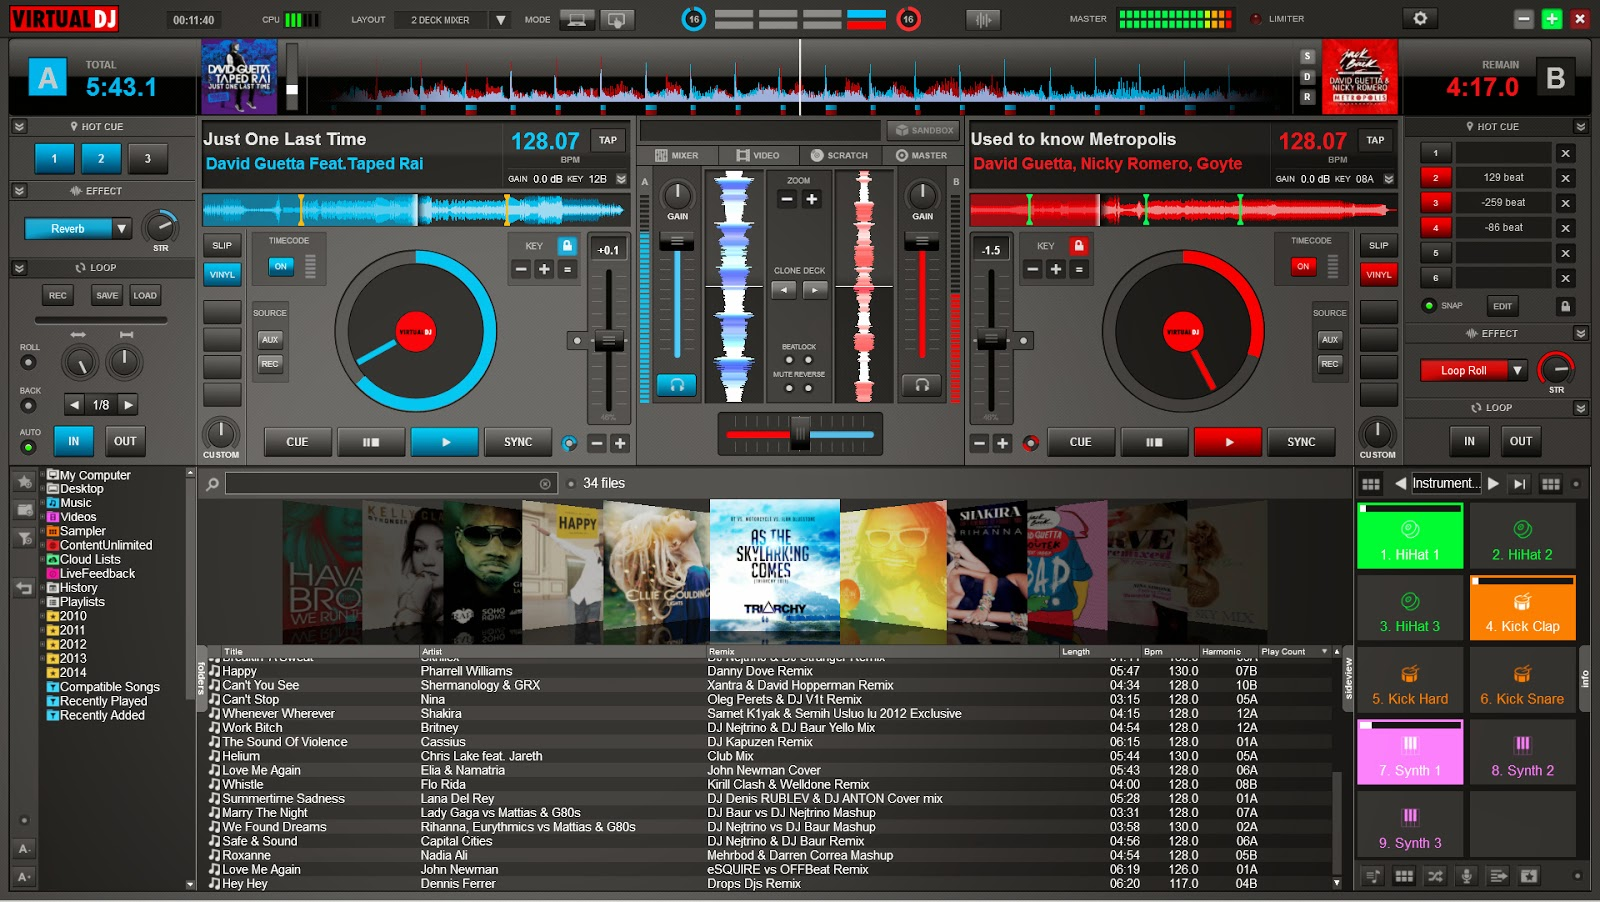 Virtual DJ Pro 8 Full Patch